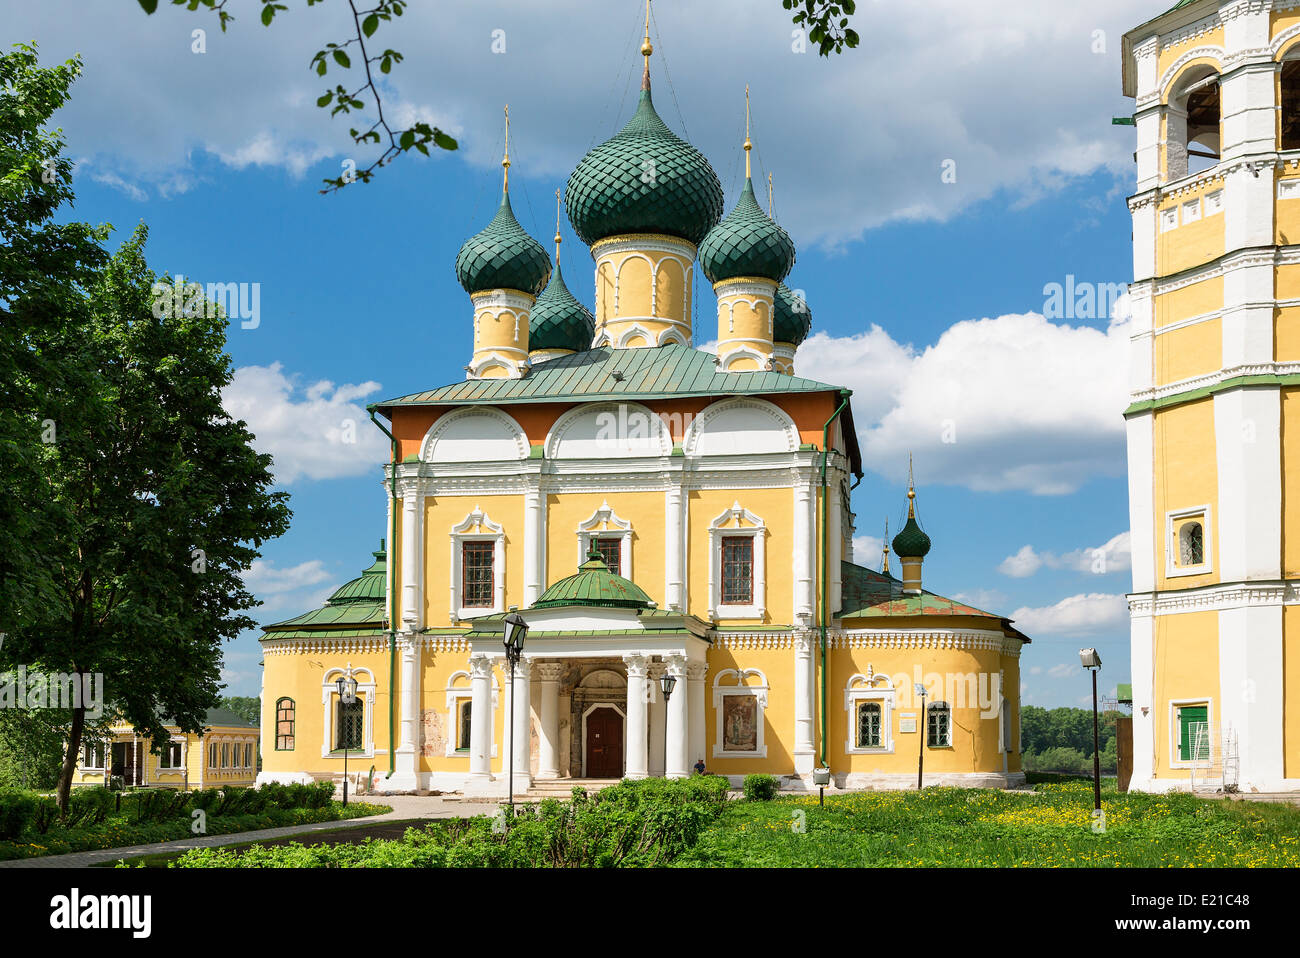 Russia, Uglich, Cathedral of Transfiguration - Stock Image